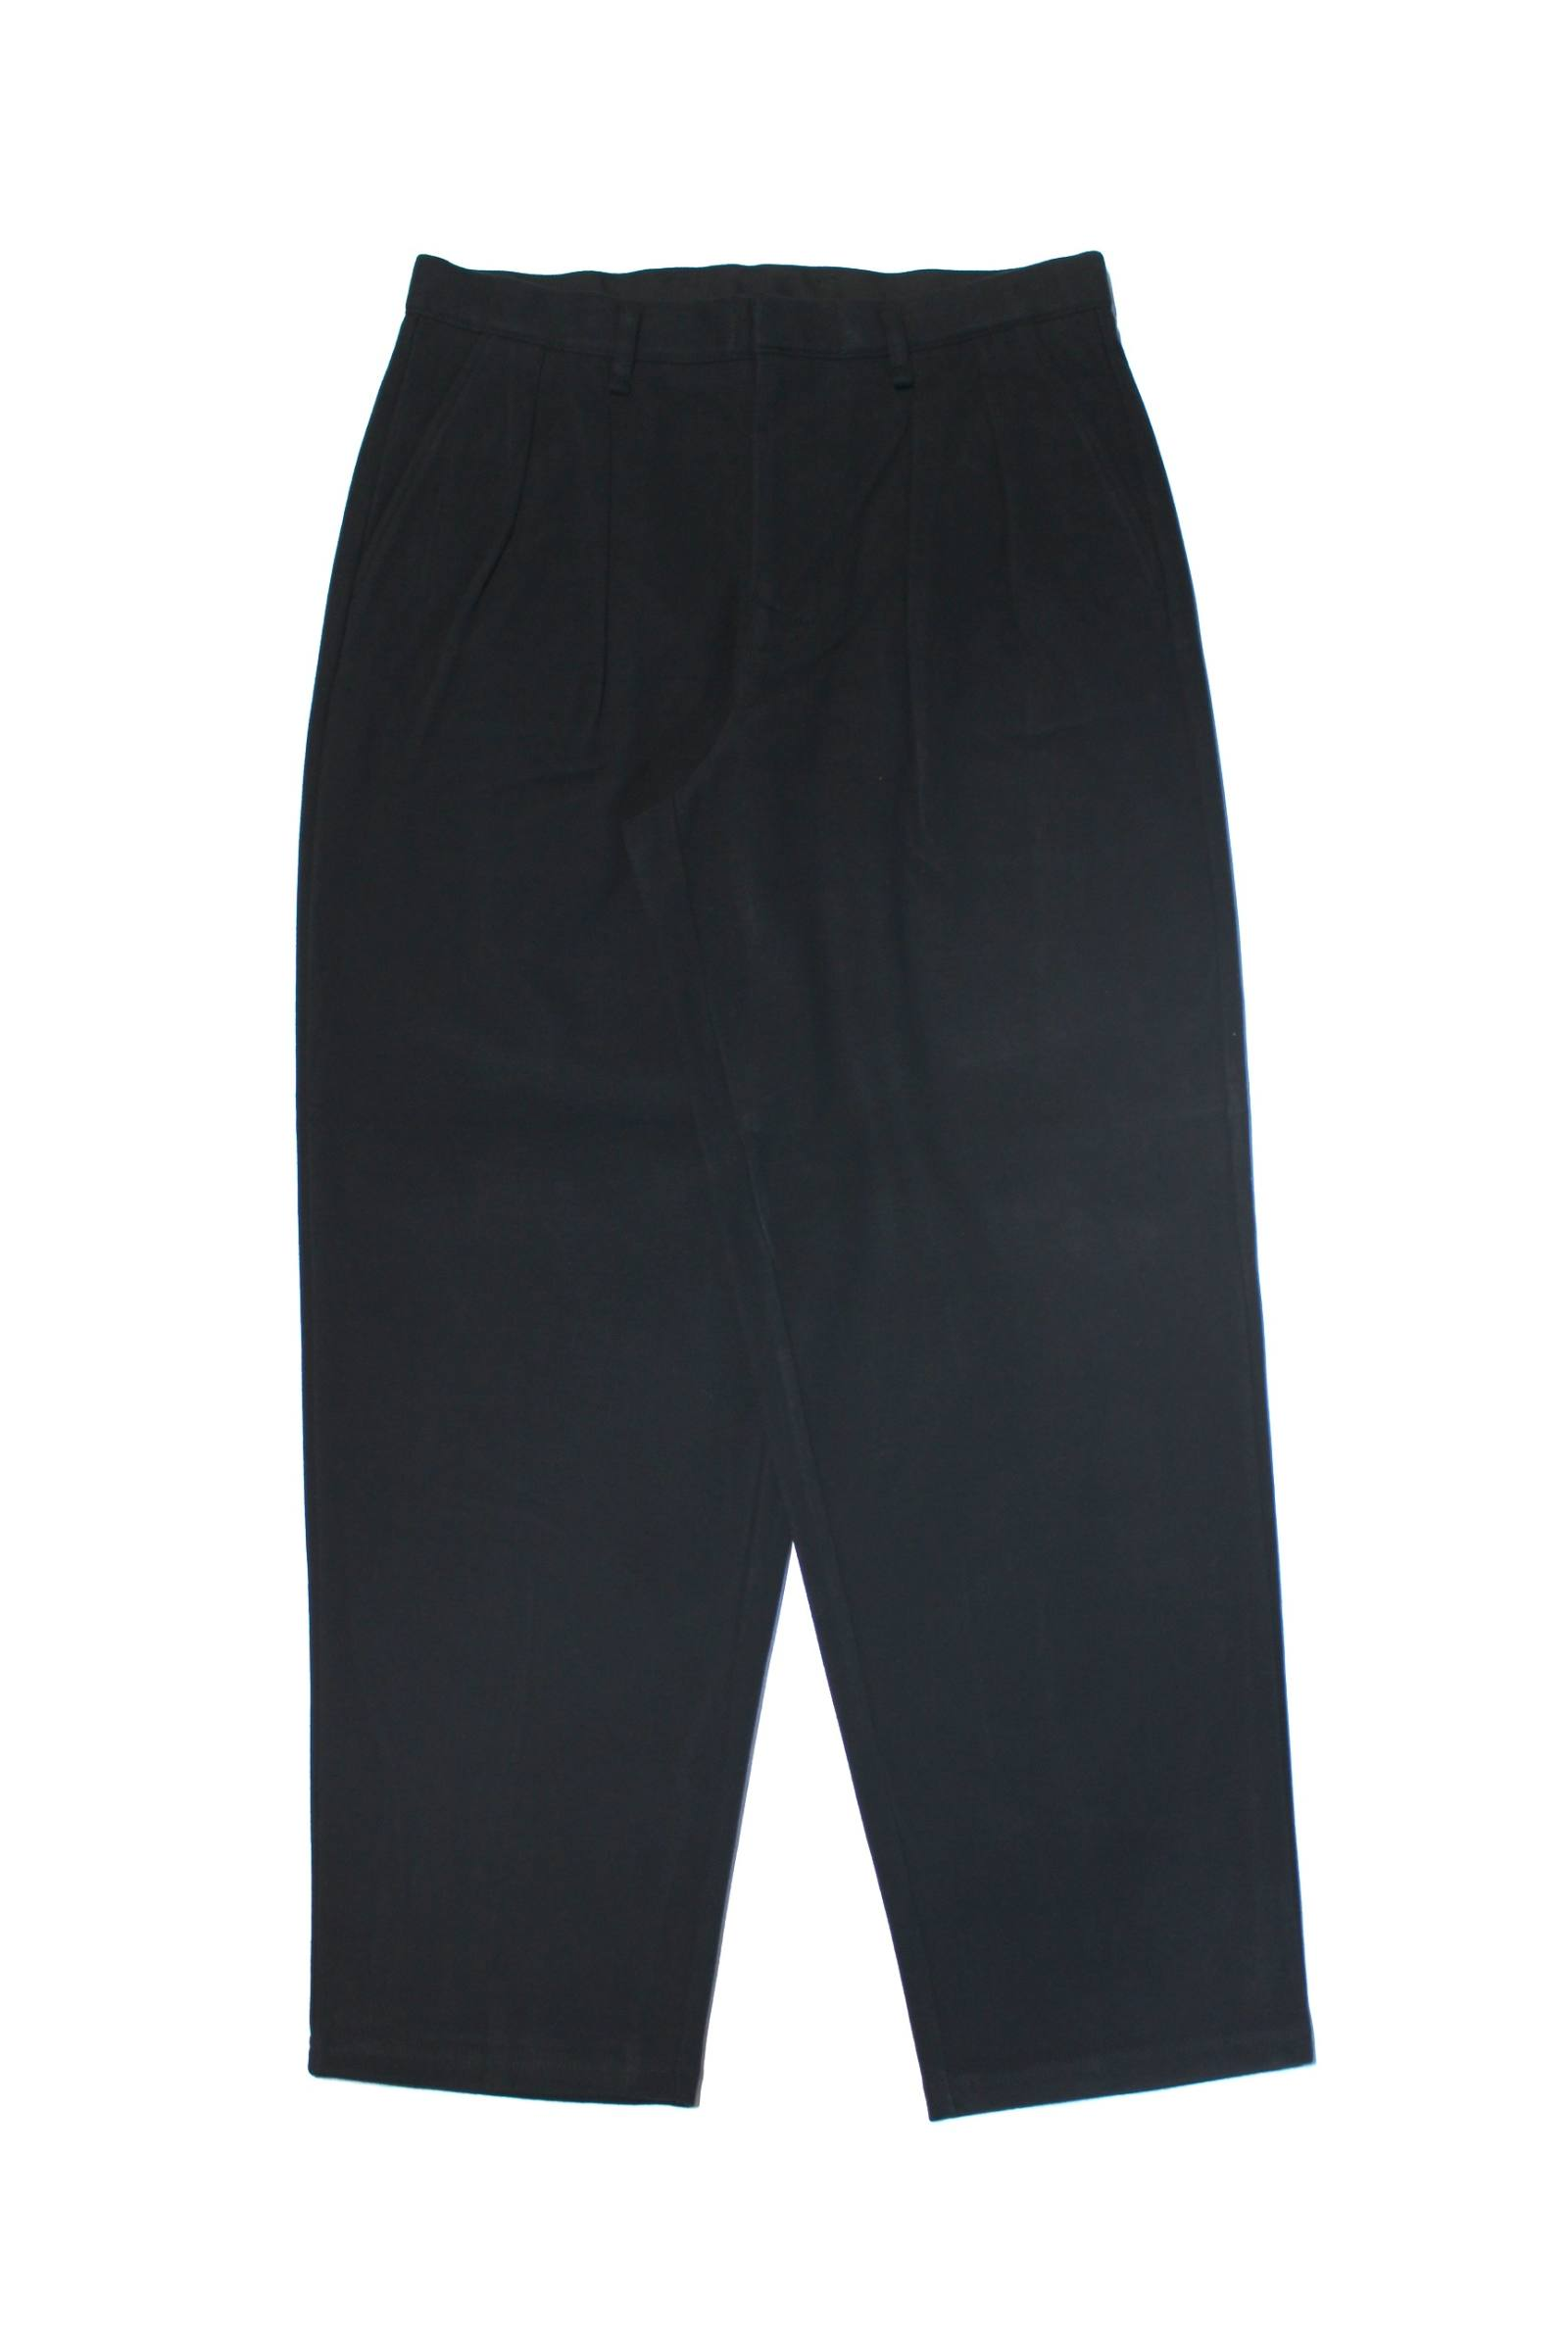 BLEECKER WD TROUSERS/ワイドトラウザーズ